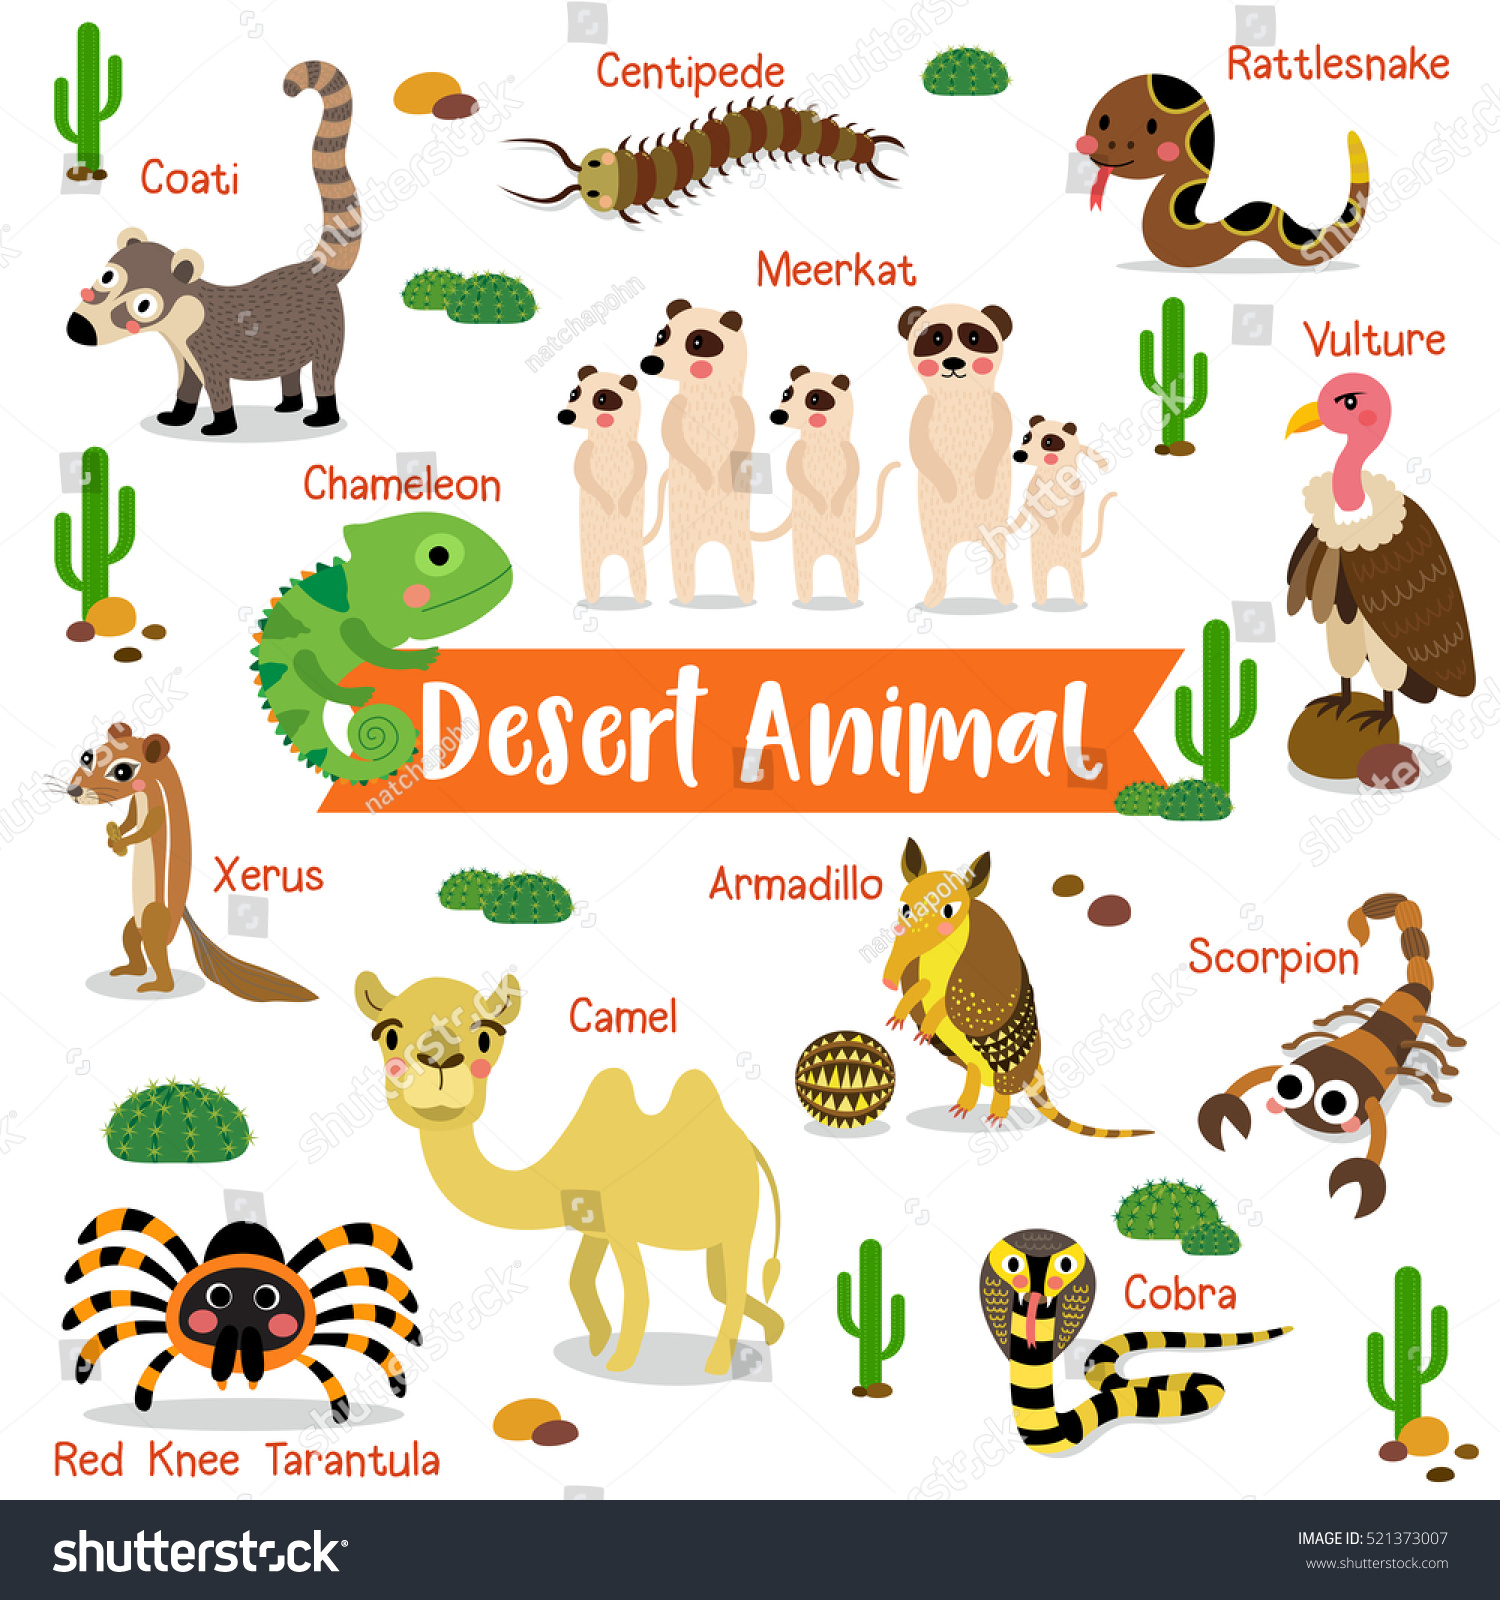 Desert animals with names chart